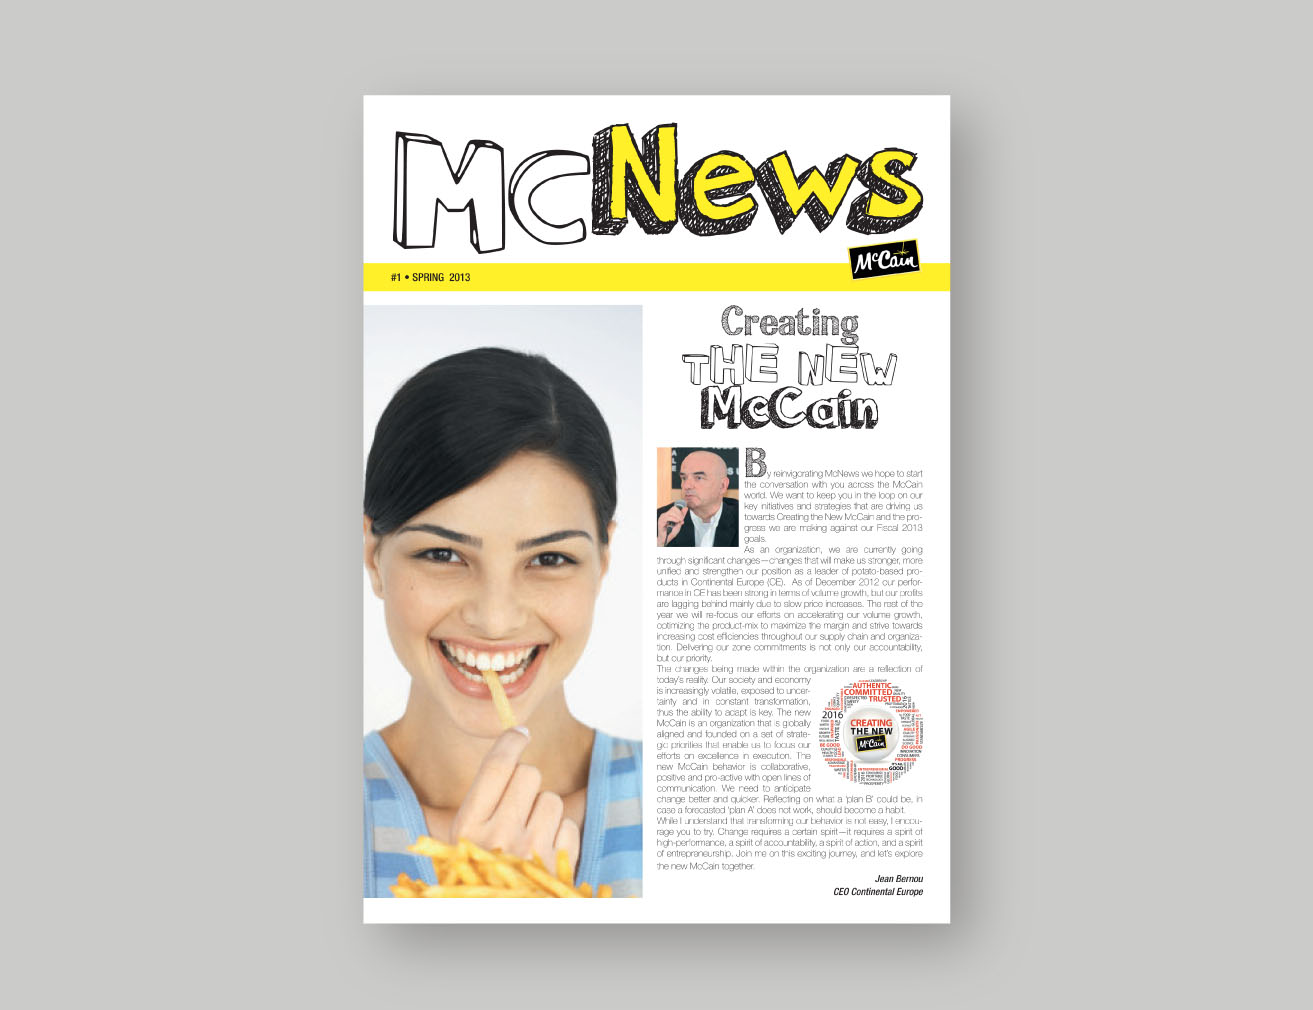 McCainNews_1